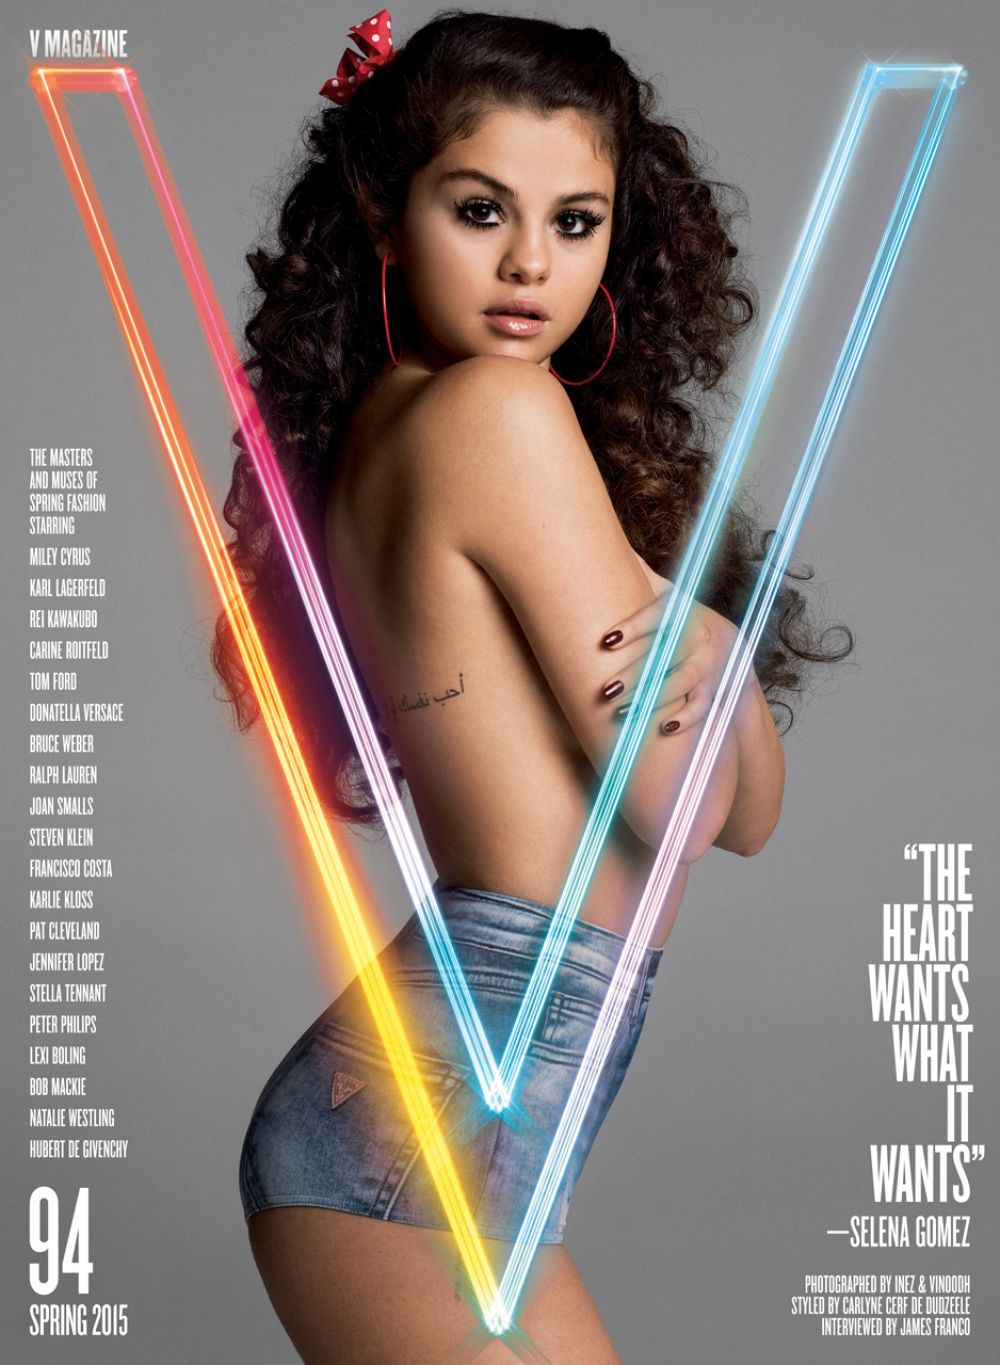 SELENA GOMEZ in V Magazine, Spring 2015 Issue